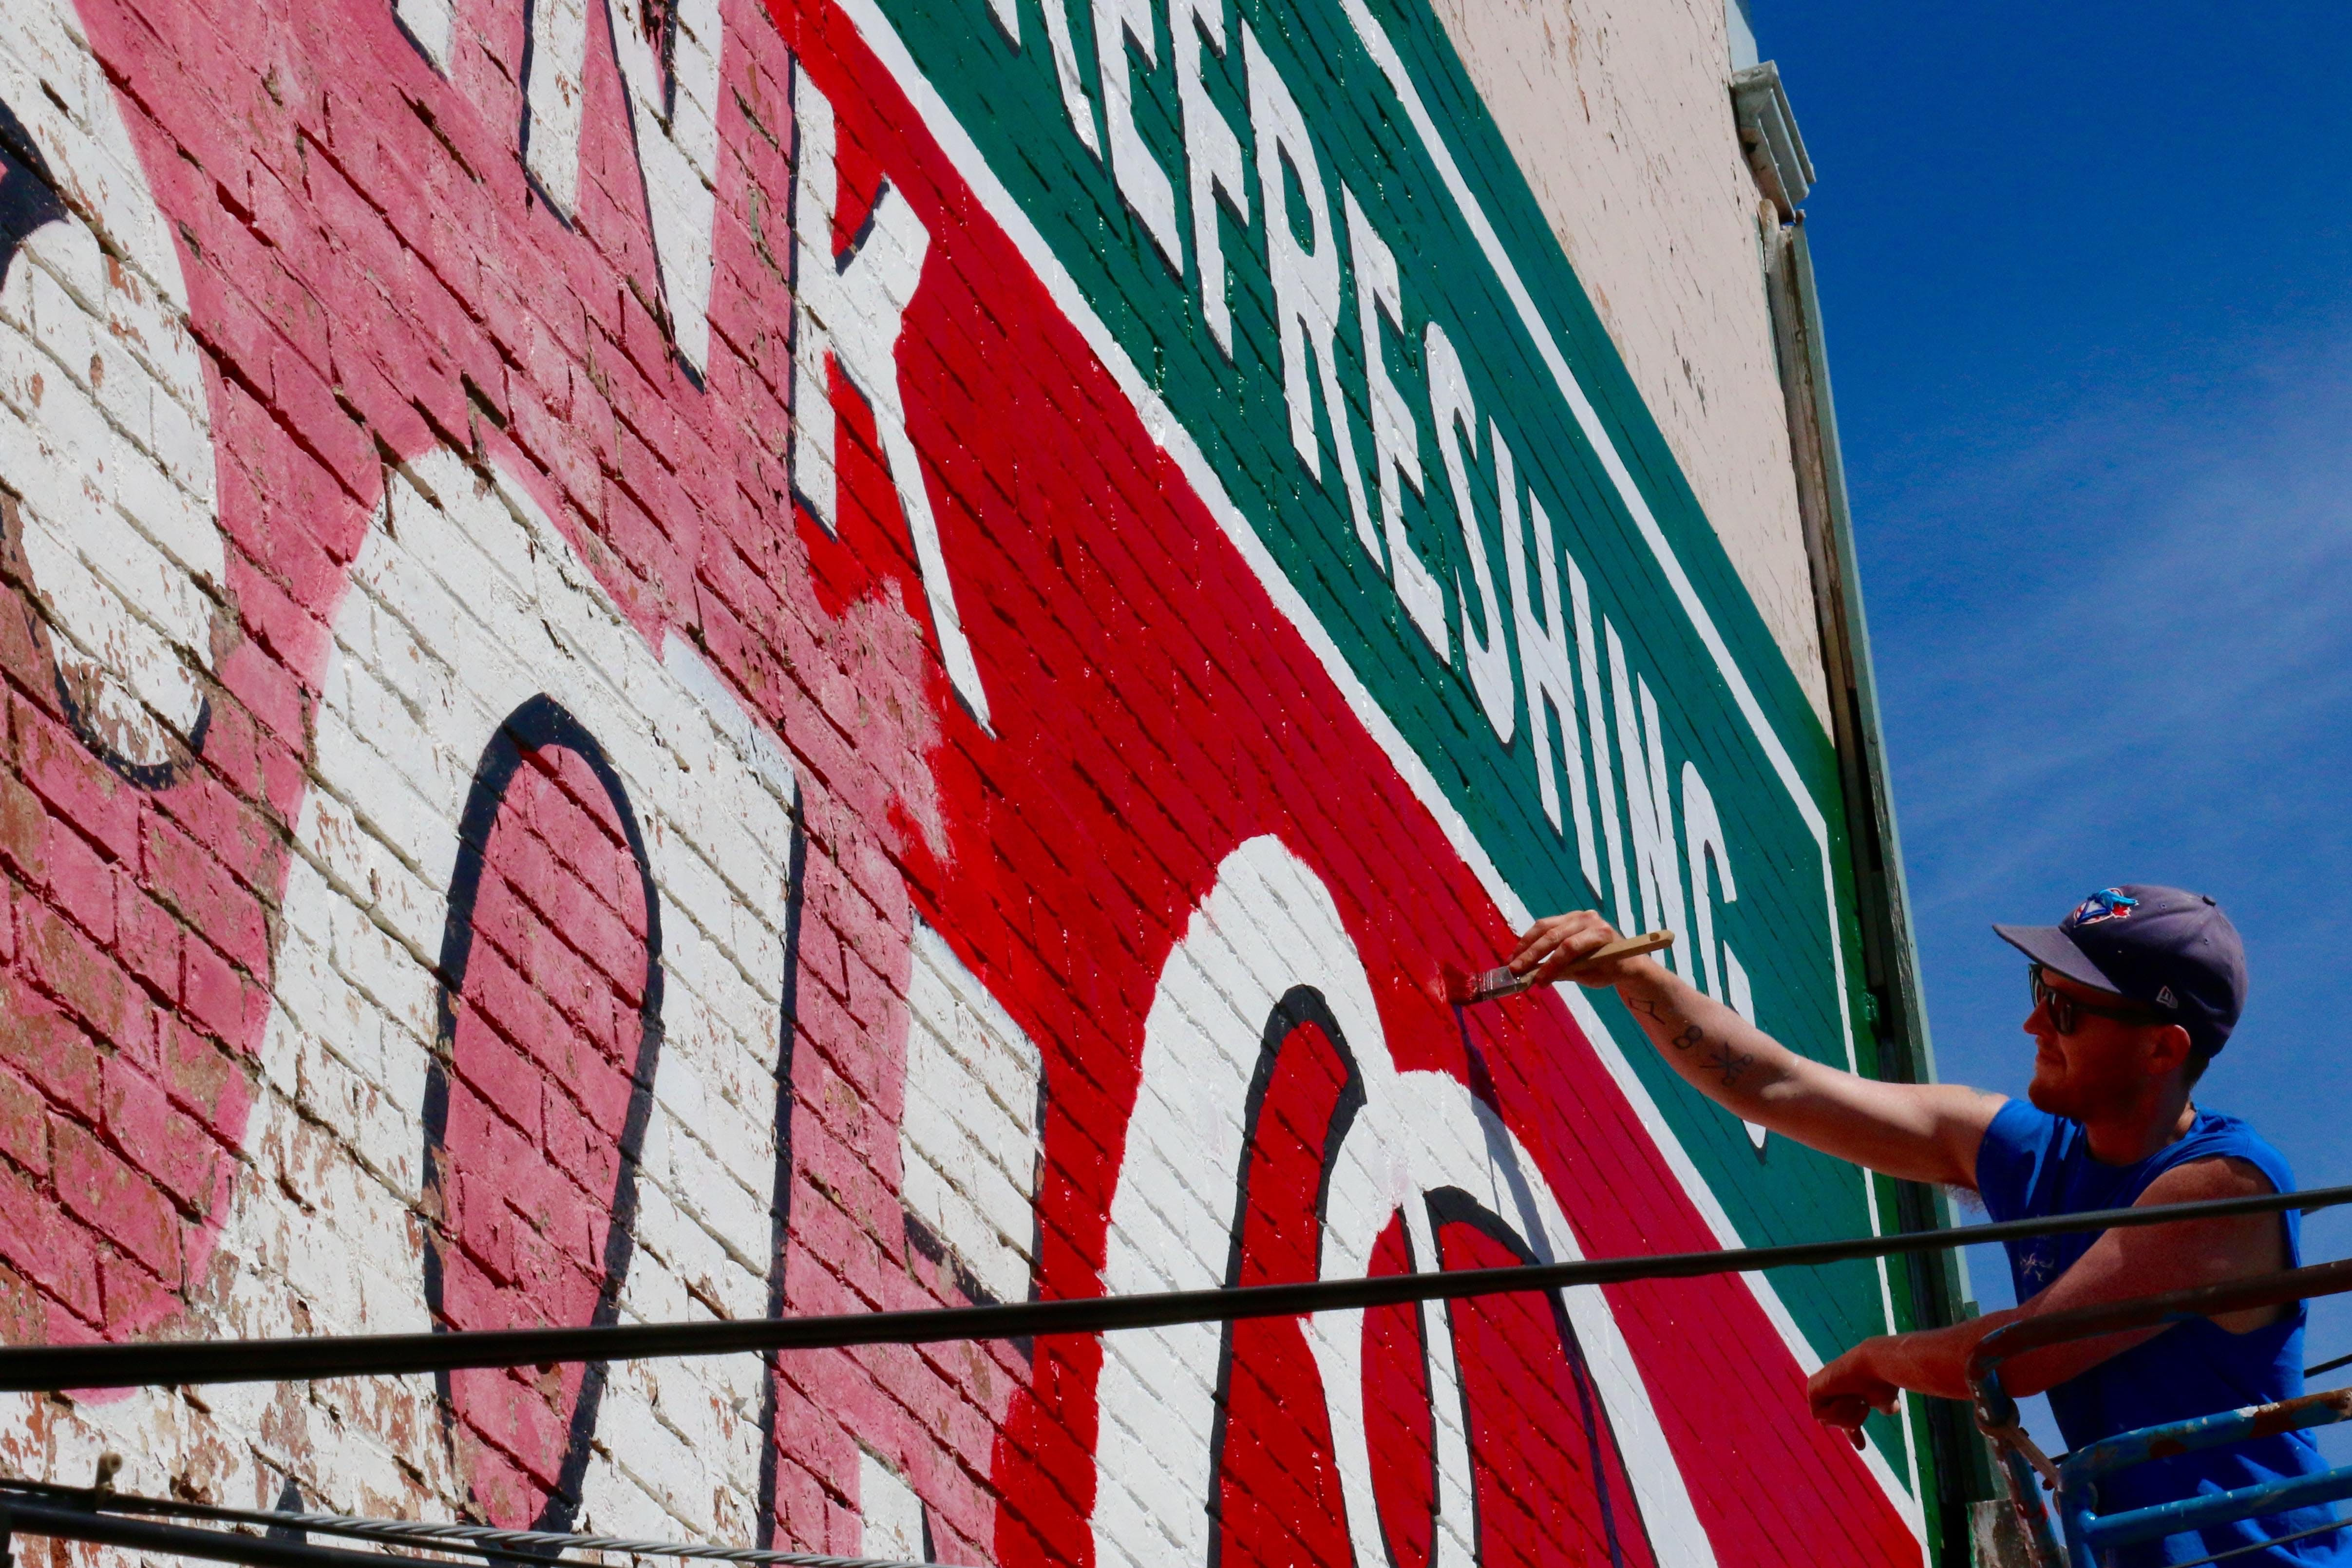 Markus Gallant has been helping repaint this iconic Coco-Cola mural, located in downtown Windsor, since July 7.